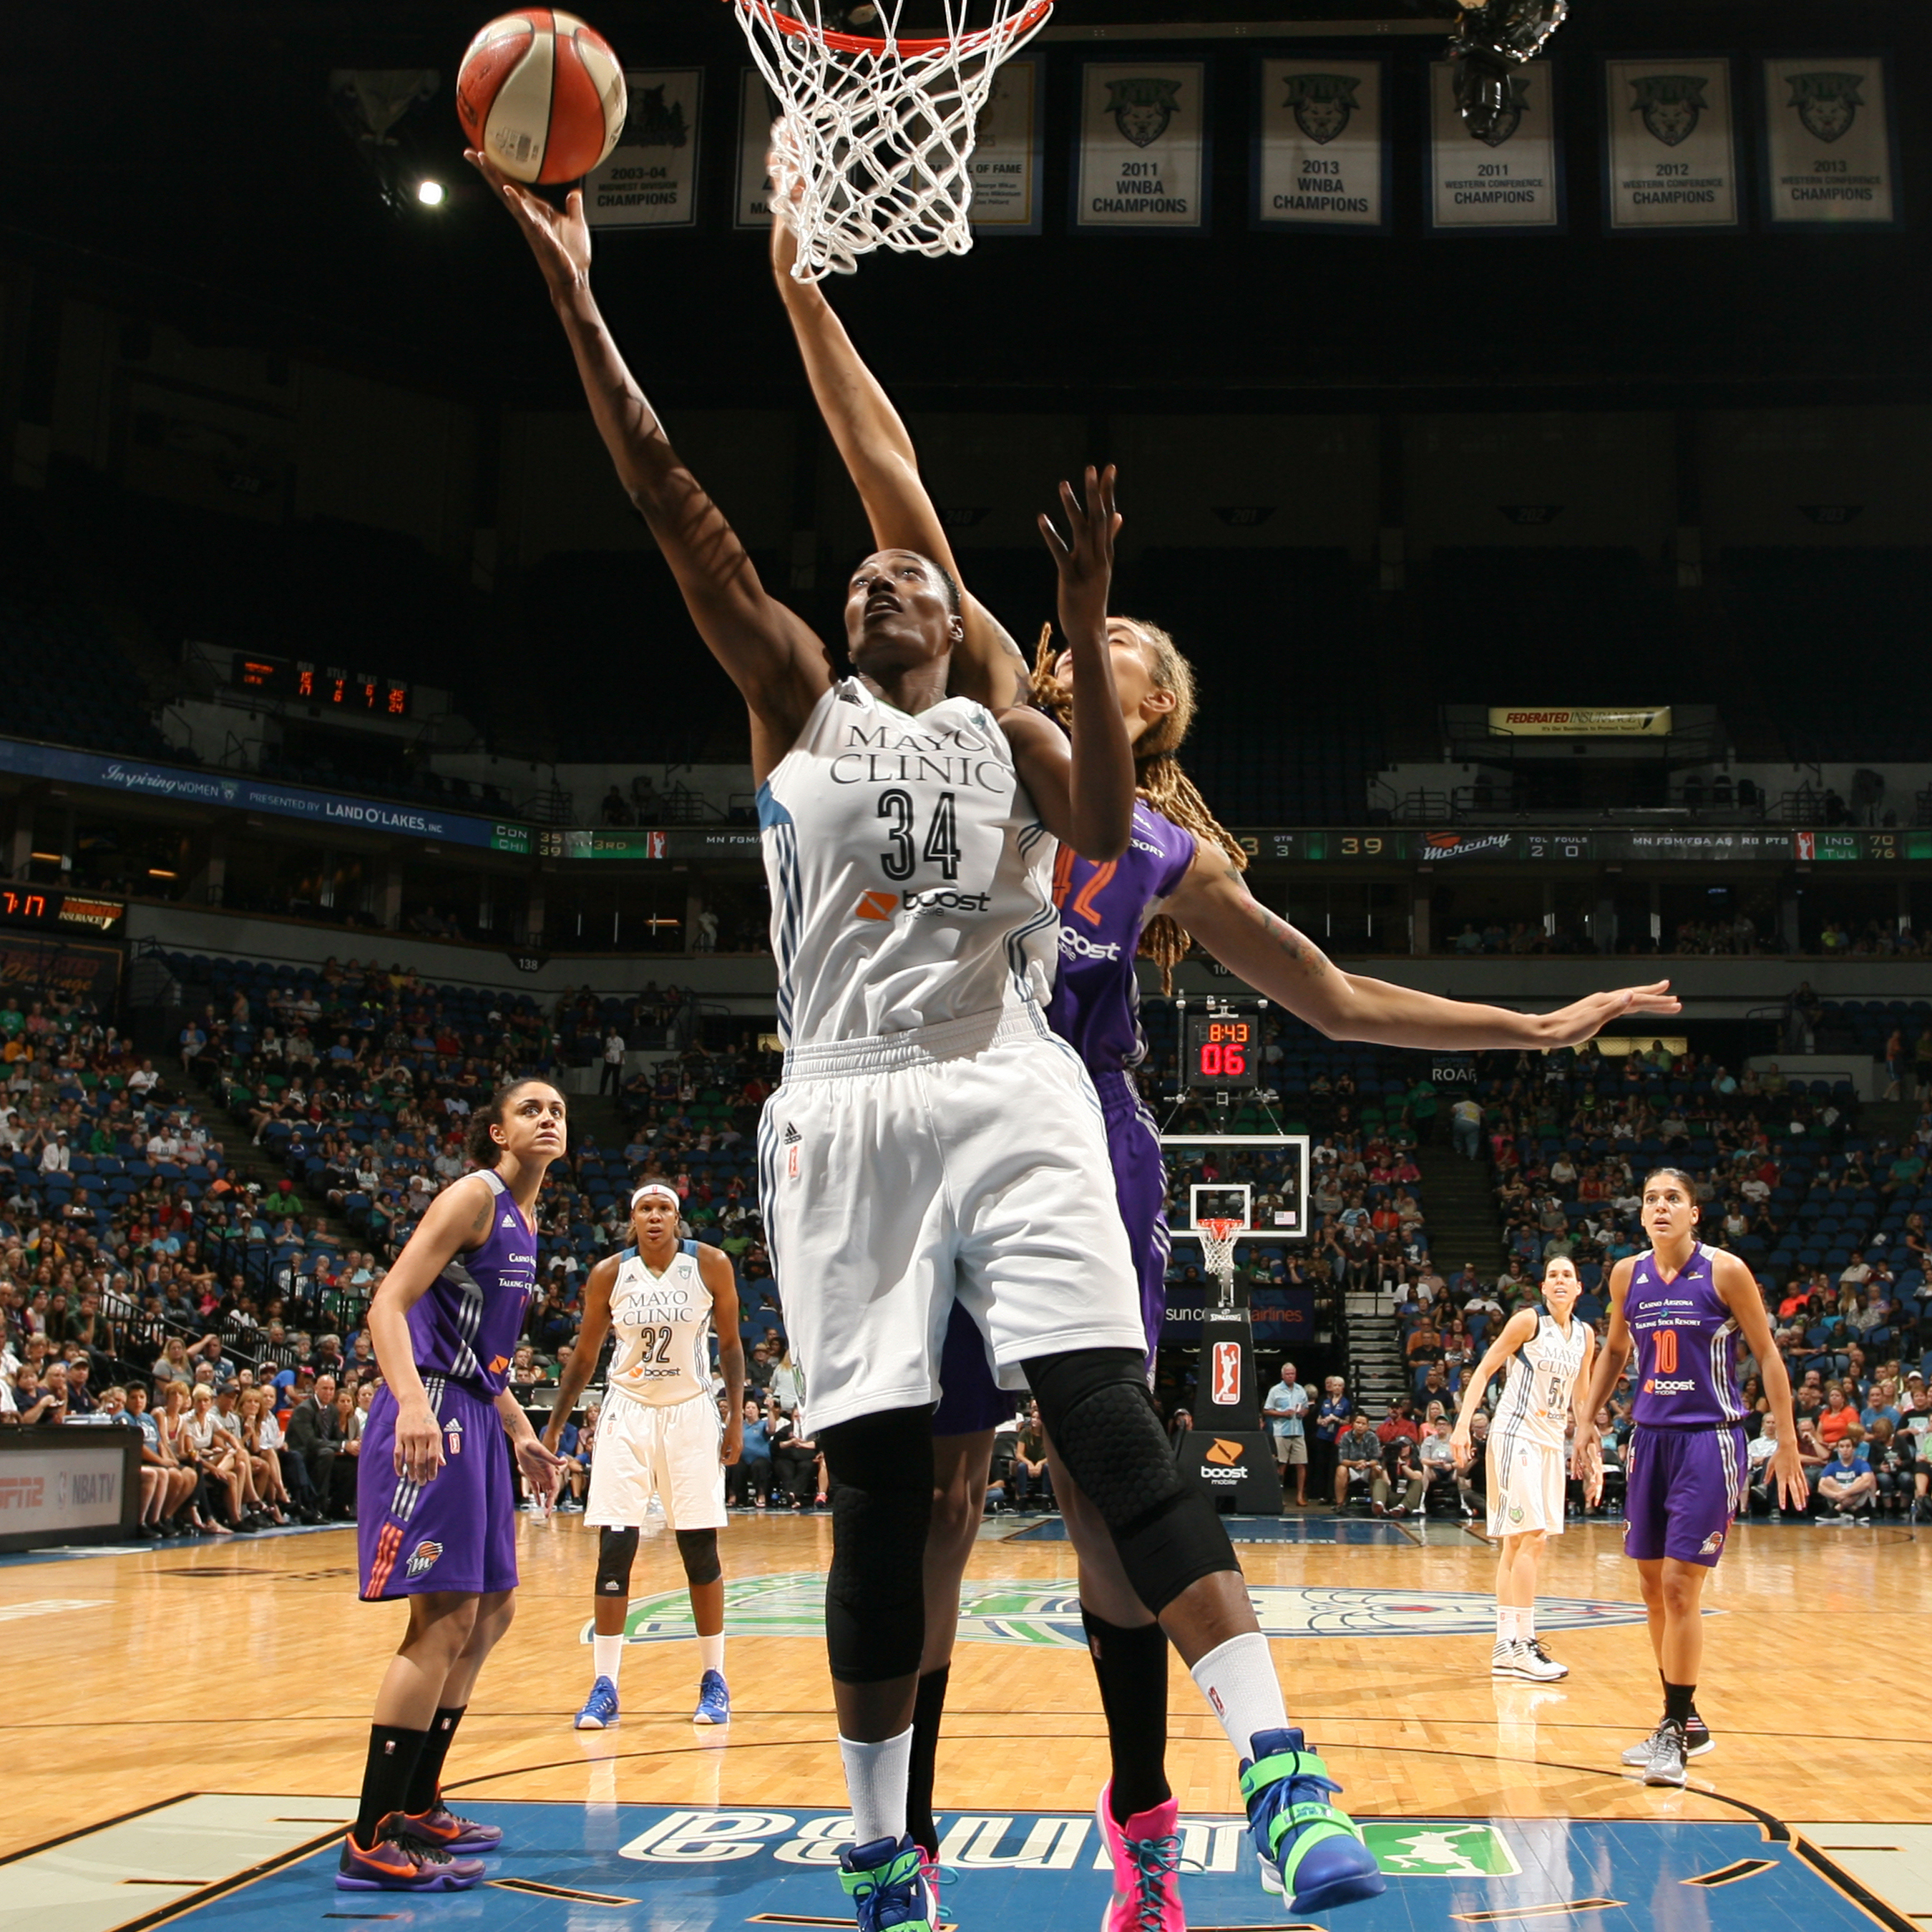 Lynx center Sylvia Fowles notched another double-double, finishing with 14 points, 13 rebounds and two blocked shots.